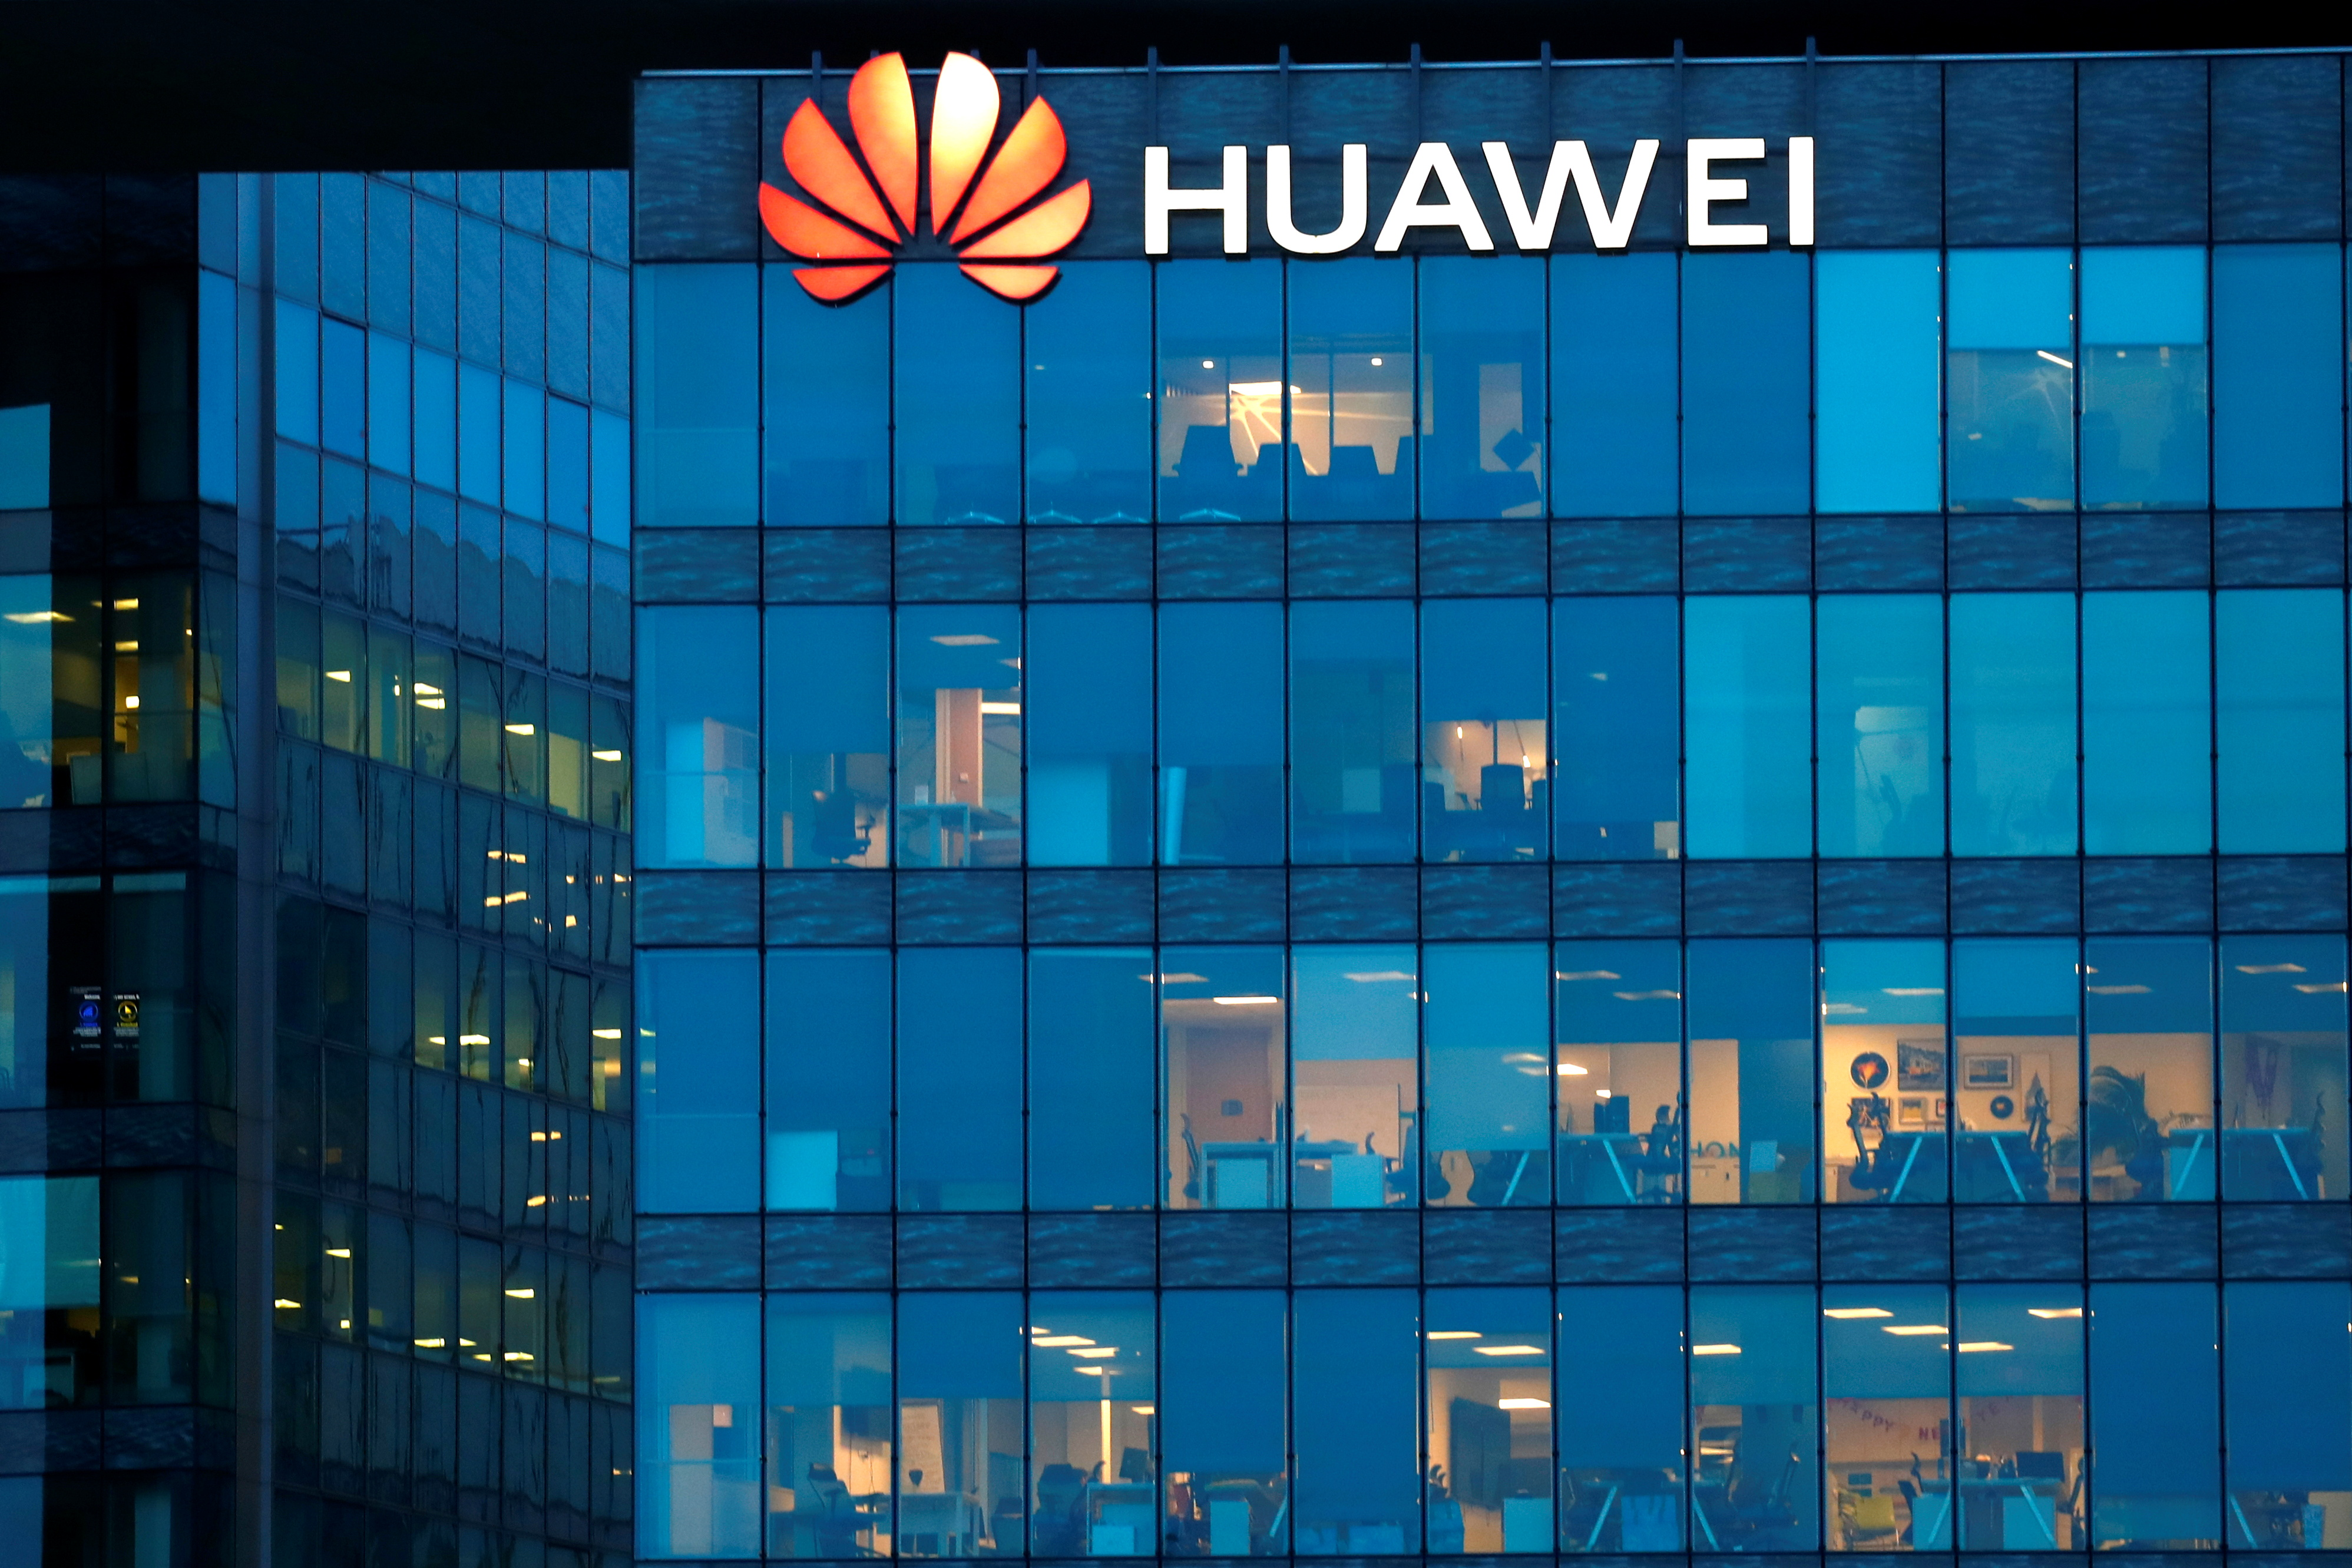 A view shows a Huawei logo at Huawei Technologies France headquarters in Boulogne-Billancourt near Paris, France, February 17, 2021. REUTERS/Gonzalo Fuentes